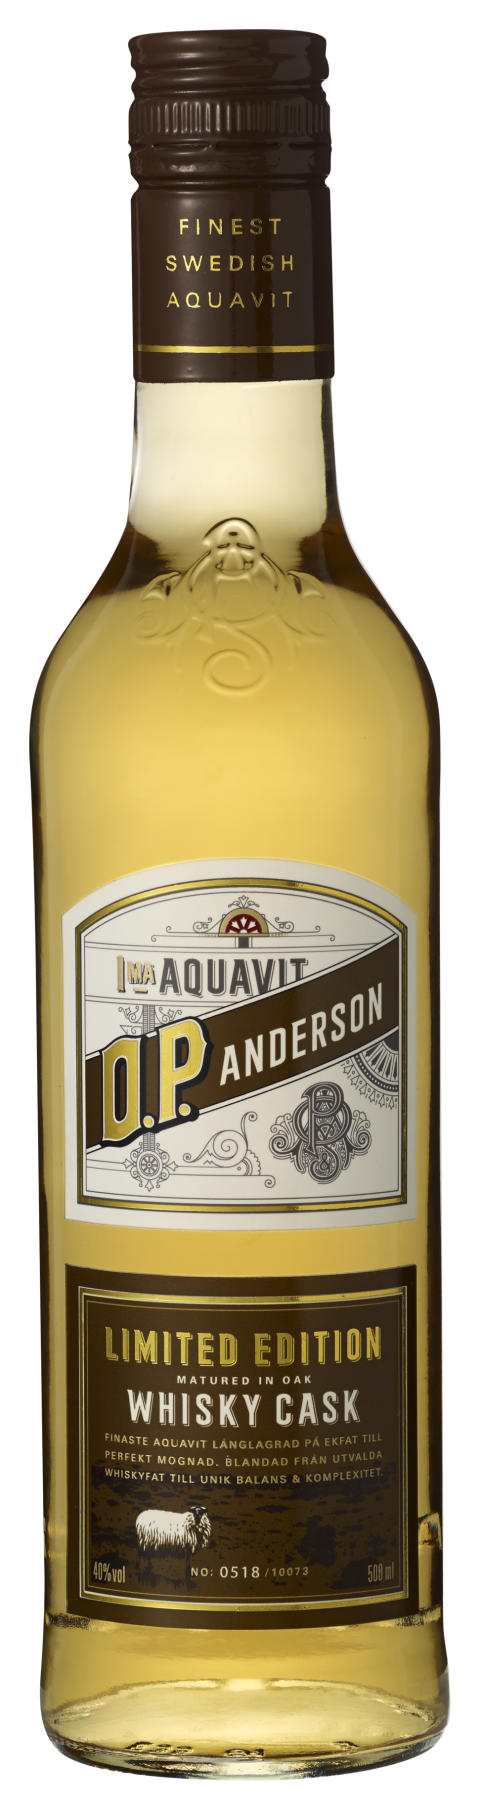 O.P. Anderson Whisky Cask